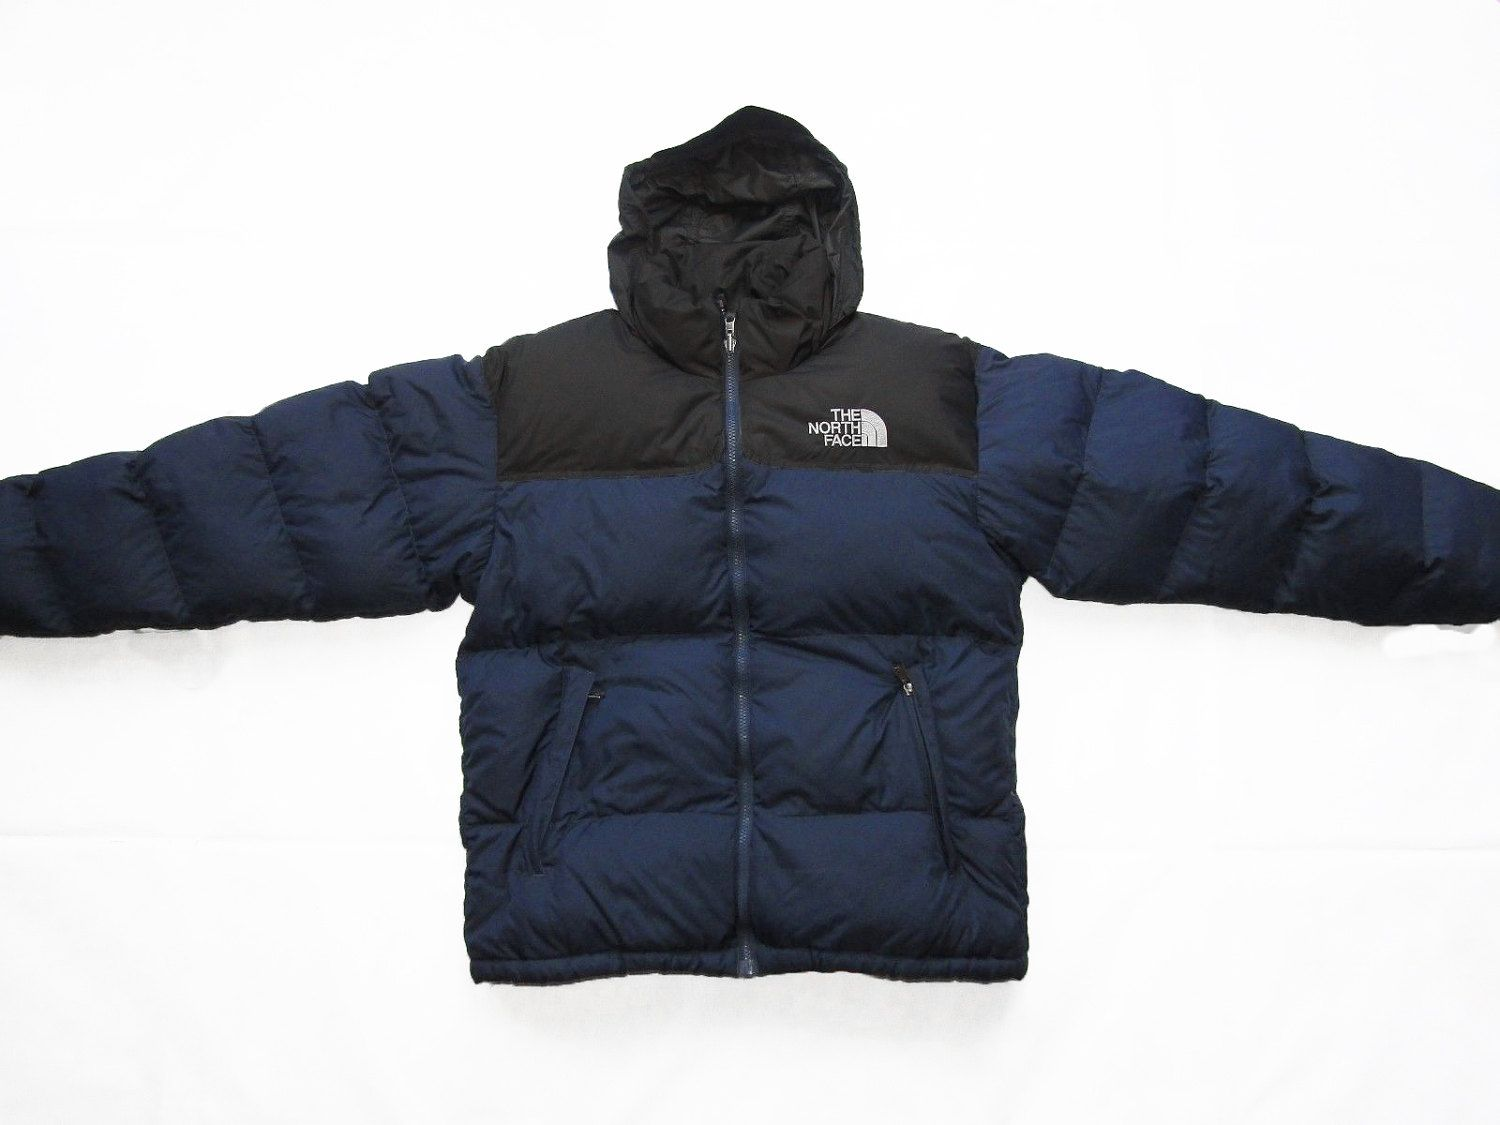 ddbaedf10 The North Face Men's Down Nuptse Puffa Puffer Jacket Blue/Black Size ...